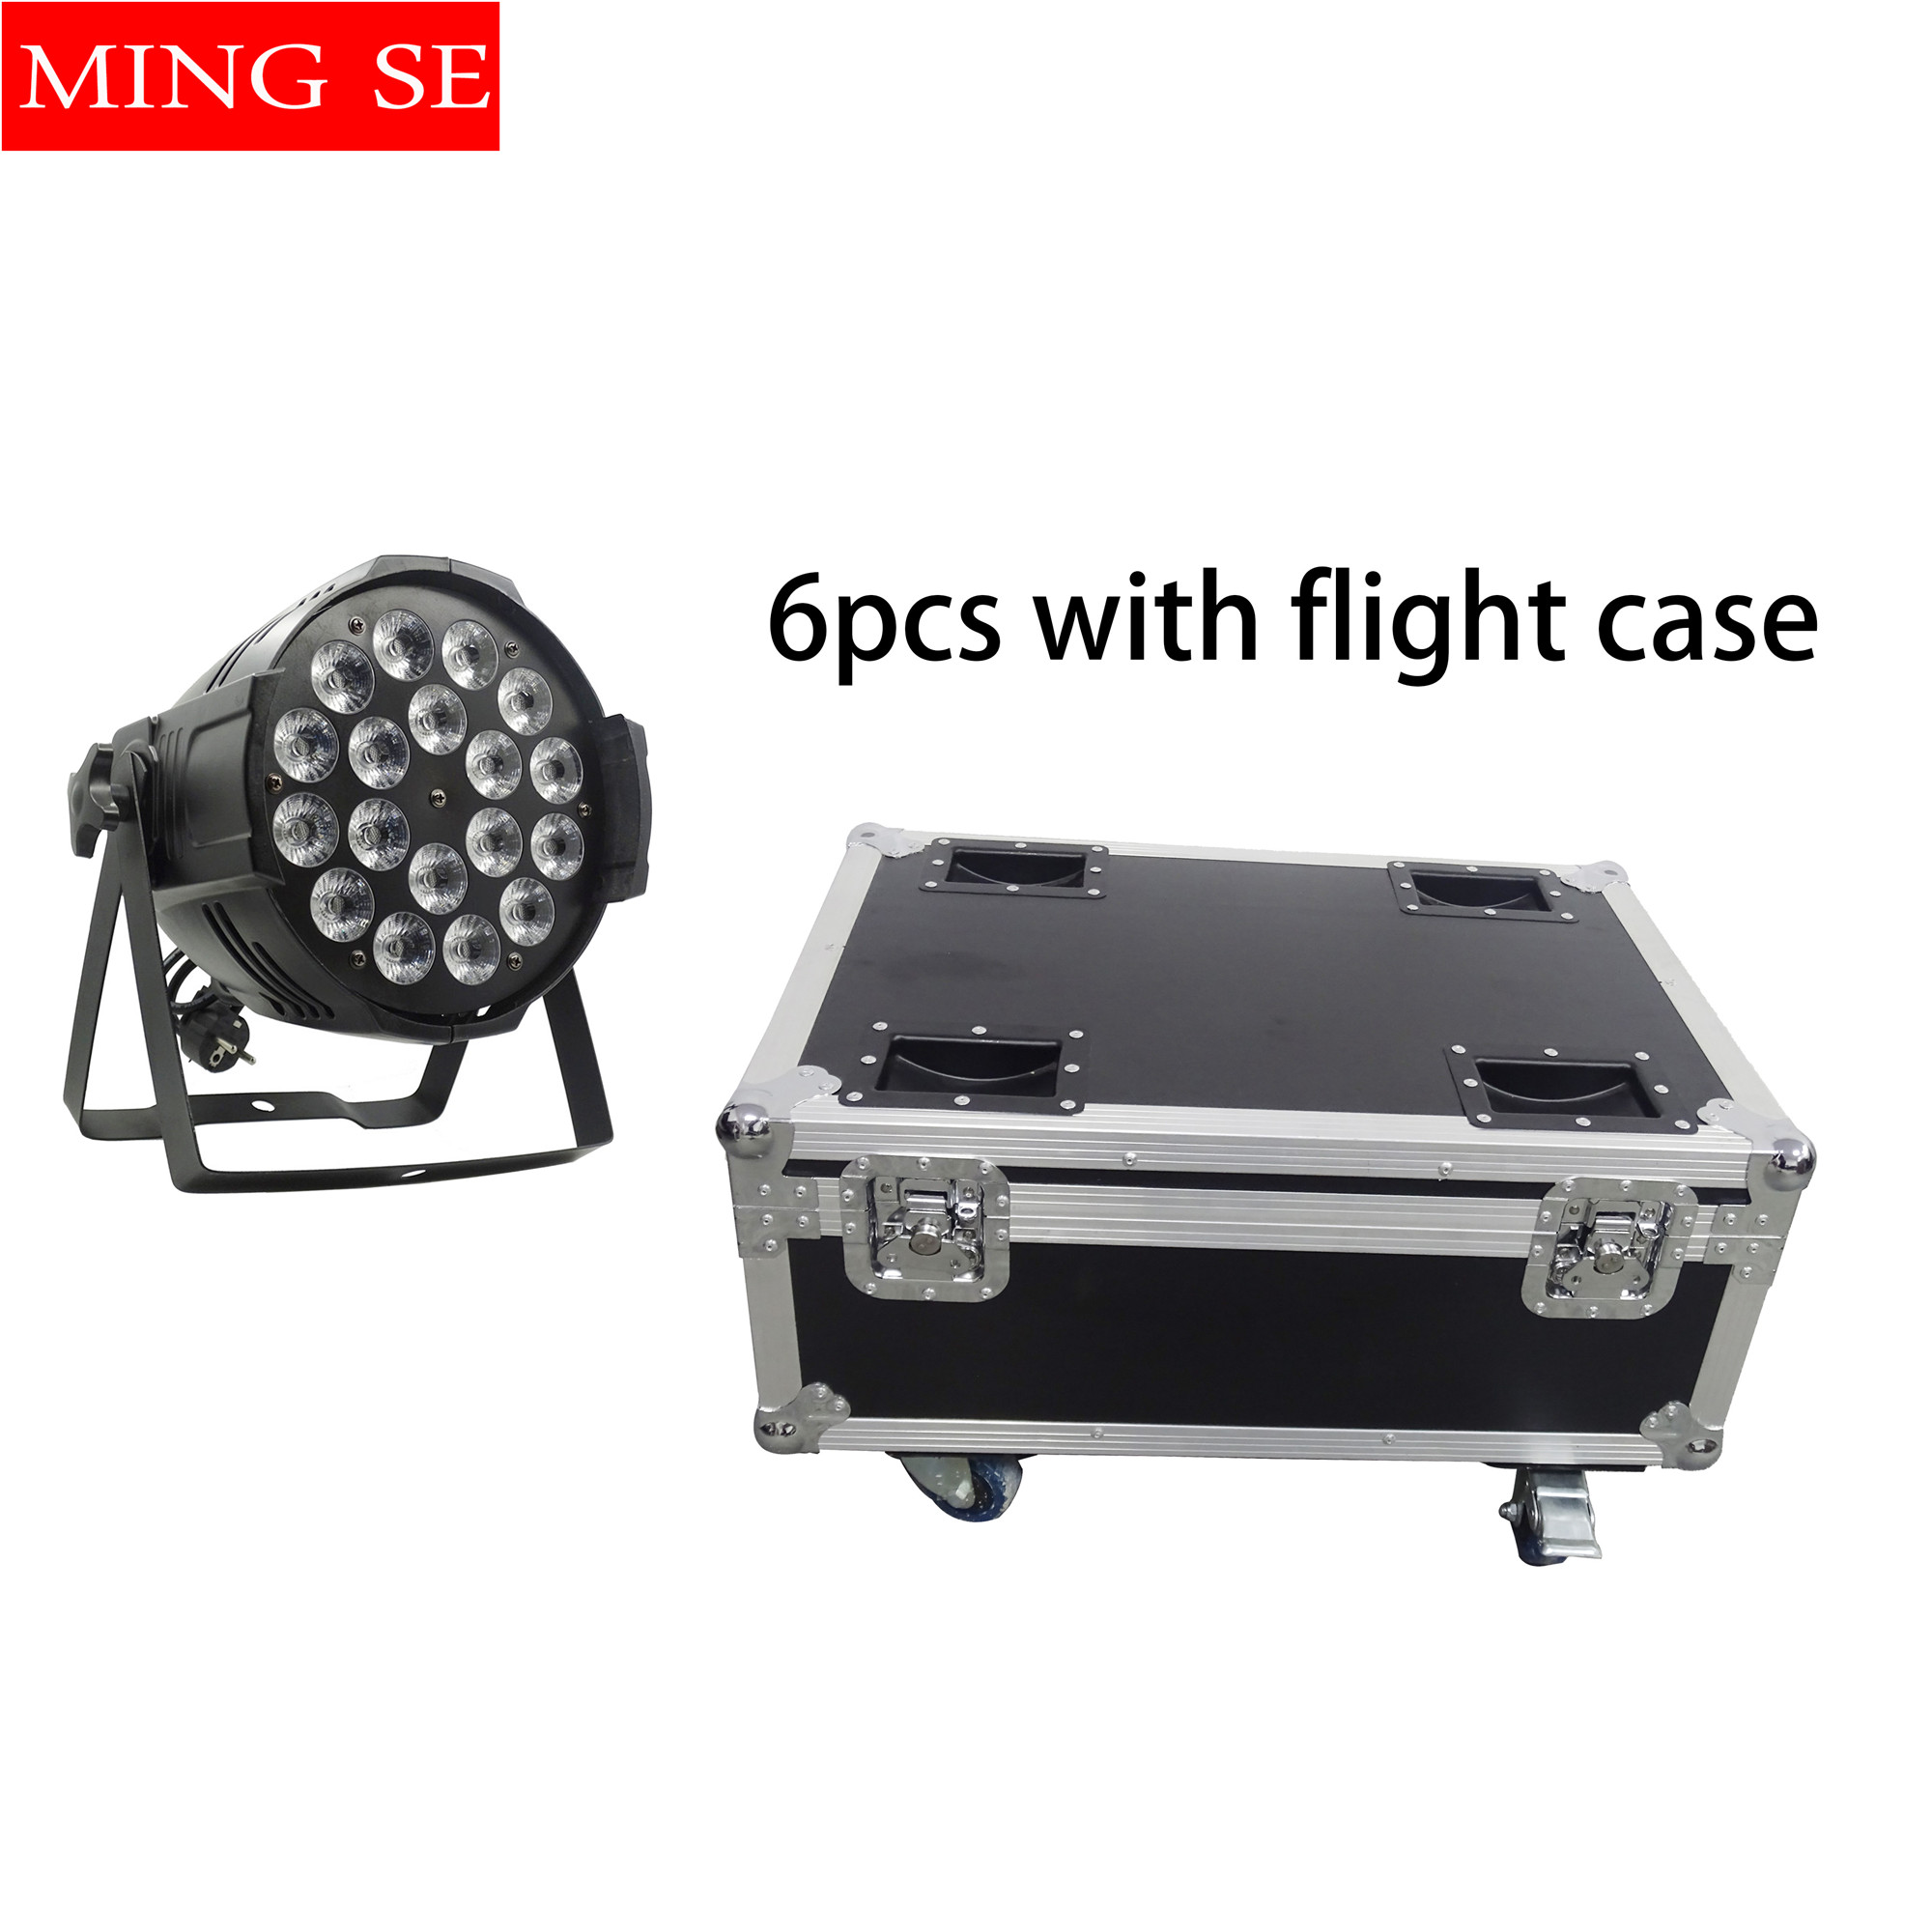 6pcs 18x12w led Par lights RGBW 4in1led dmx512 disco lights professional stage dj equipment With flight case6pcs 18x12w led Par lights RGBW 4in1led dmx512 disco lights professional stage dj equipment With flight case